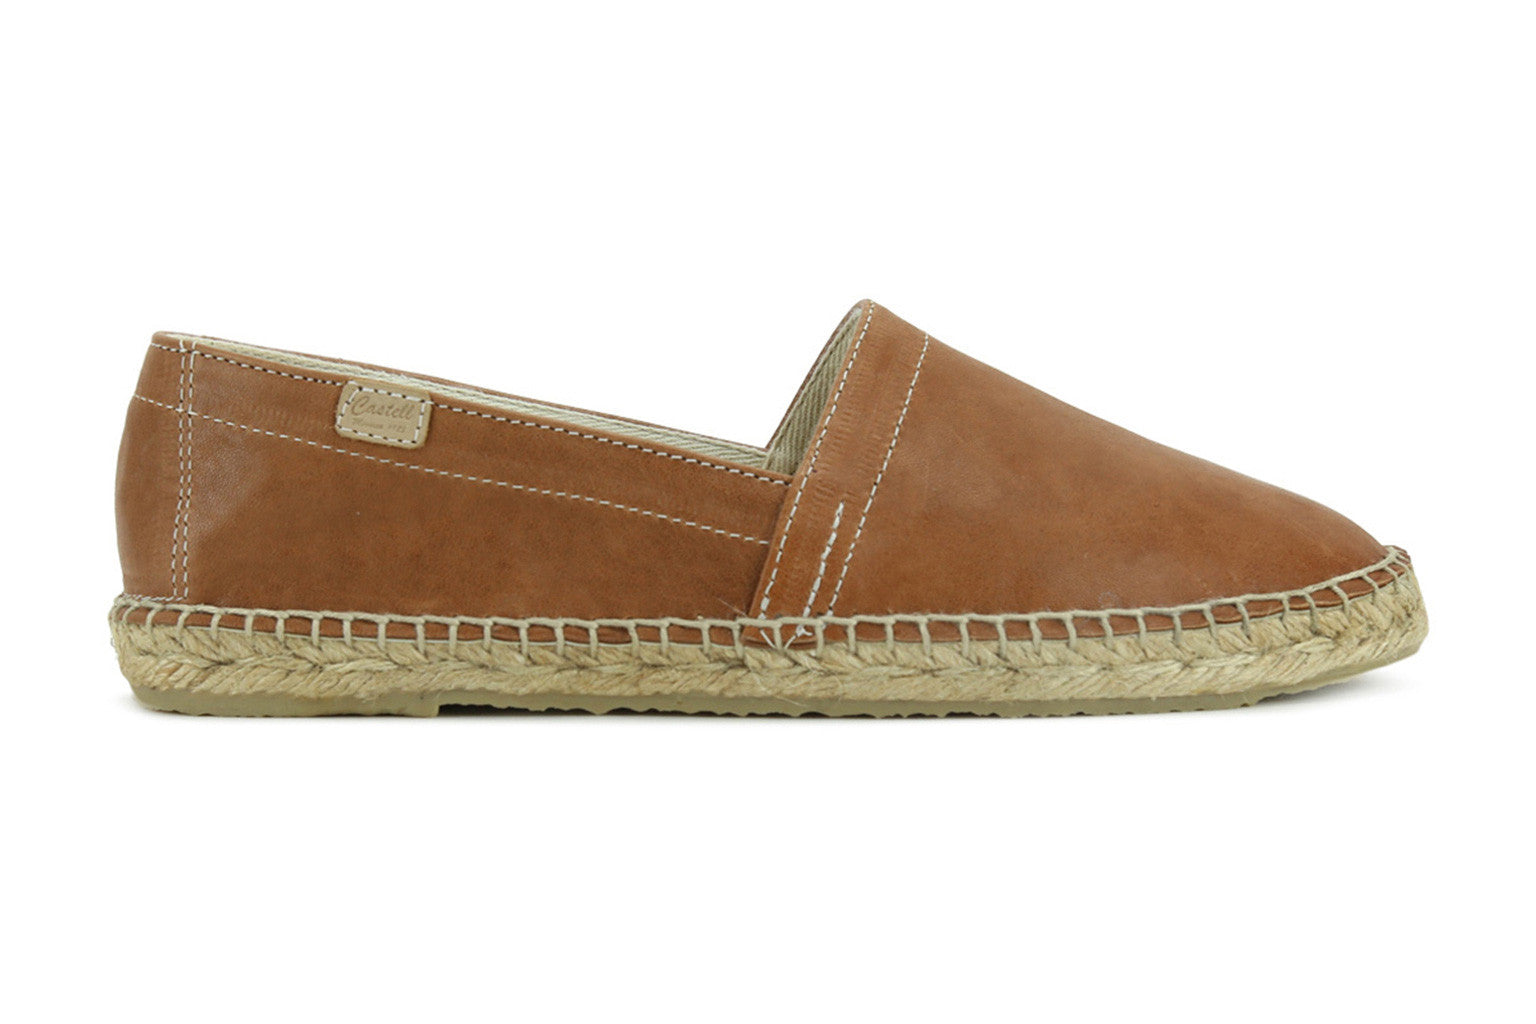 c3fc8f74faa Castell Women's Brown Leather Espadrilles